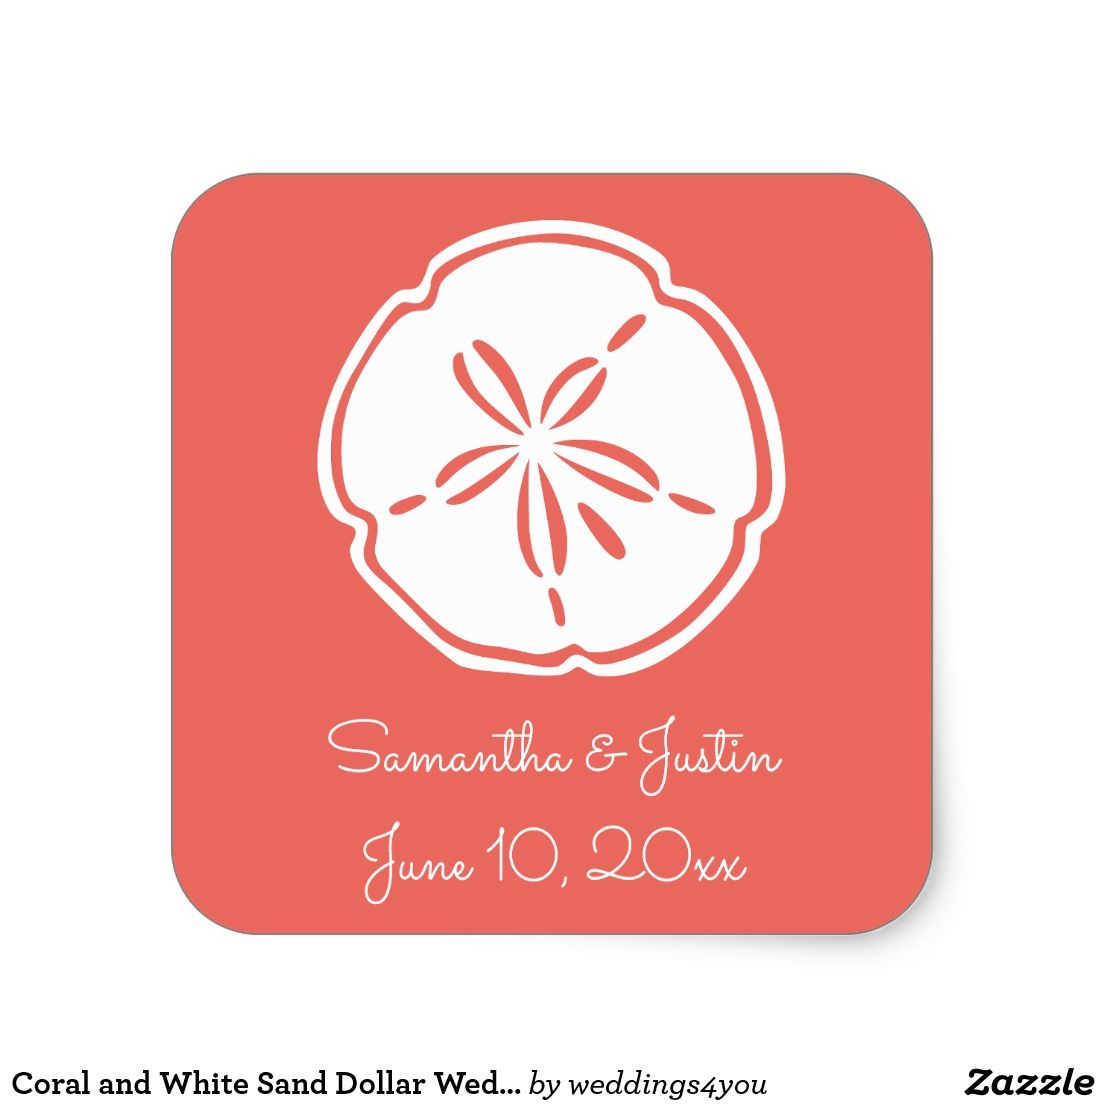 Coral and White Sand Dollar Wedding Square Sticker